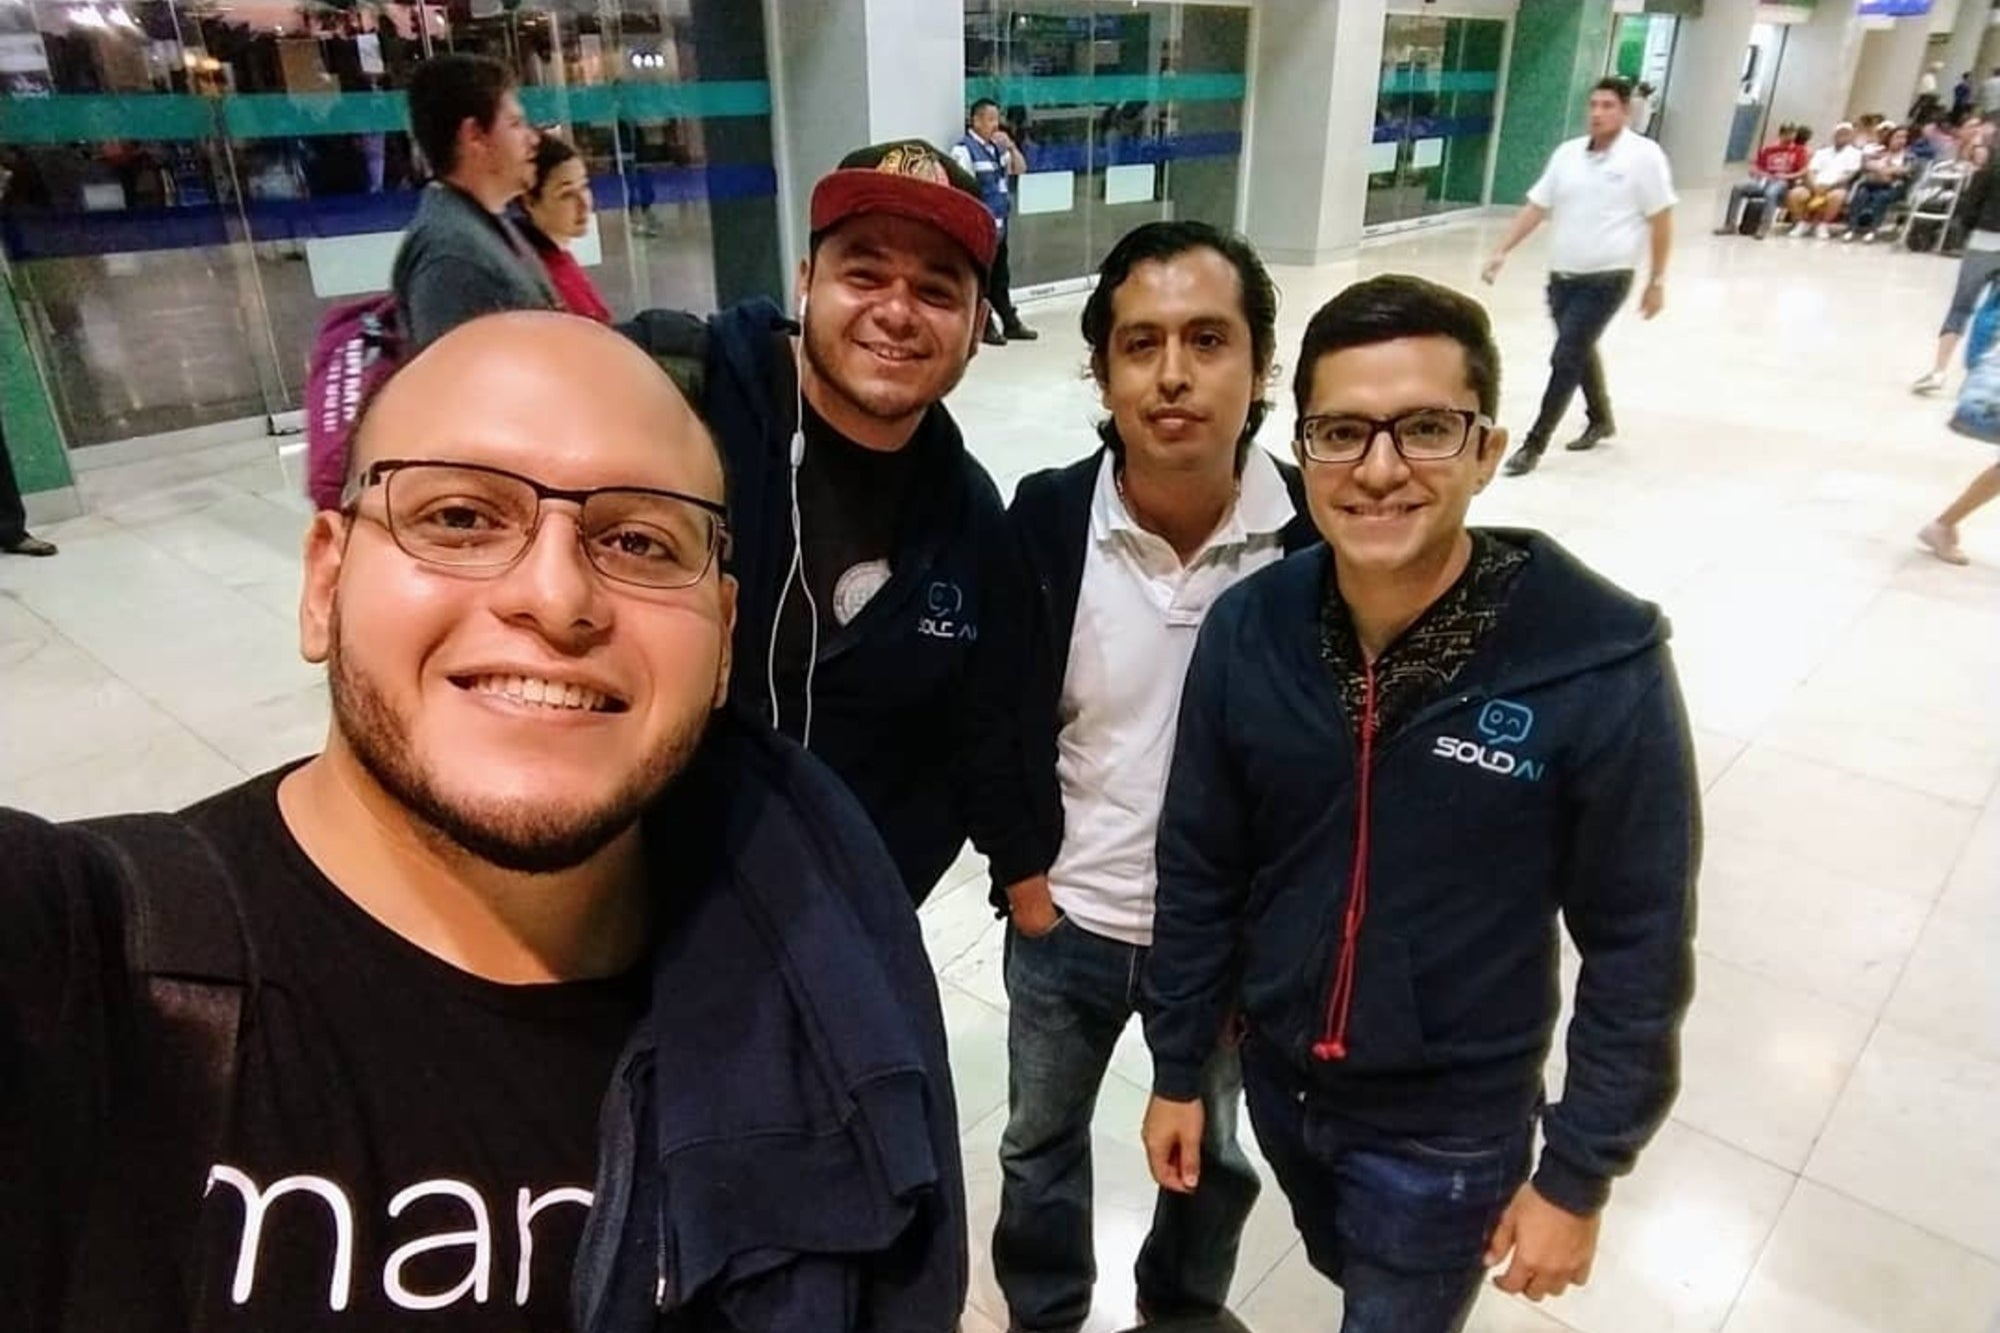 Mare! Yucatecans correct Google and are now part of their LATAM Cloud Accelerator